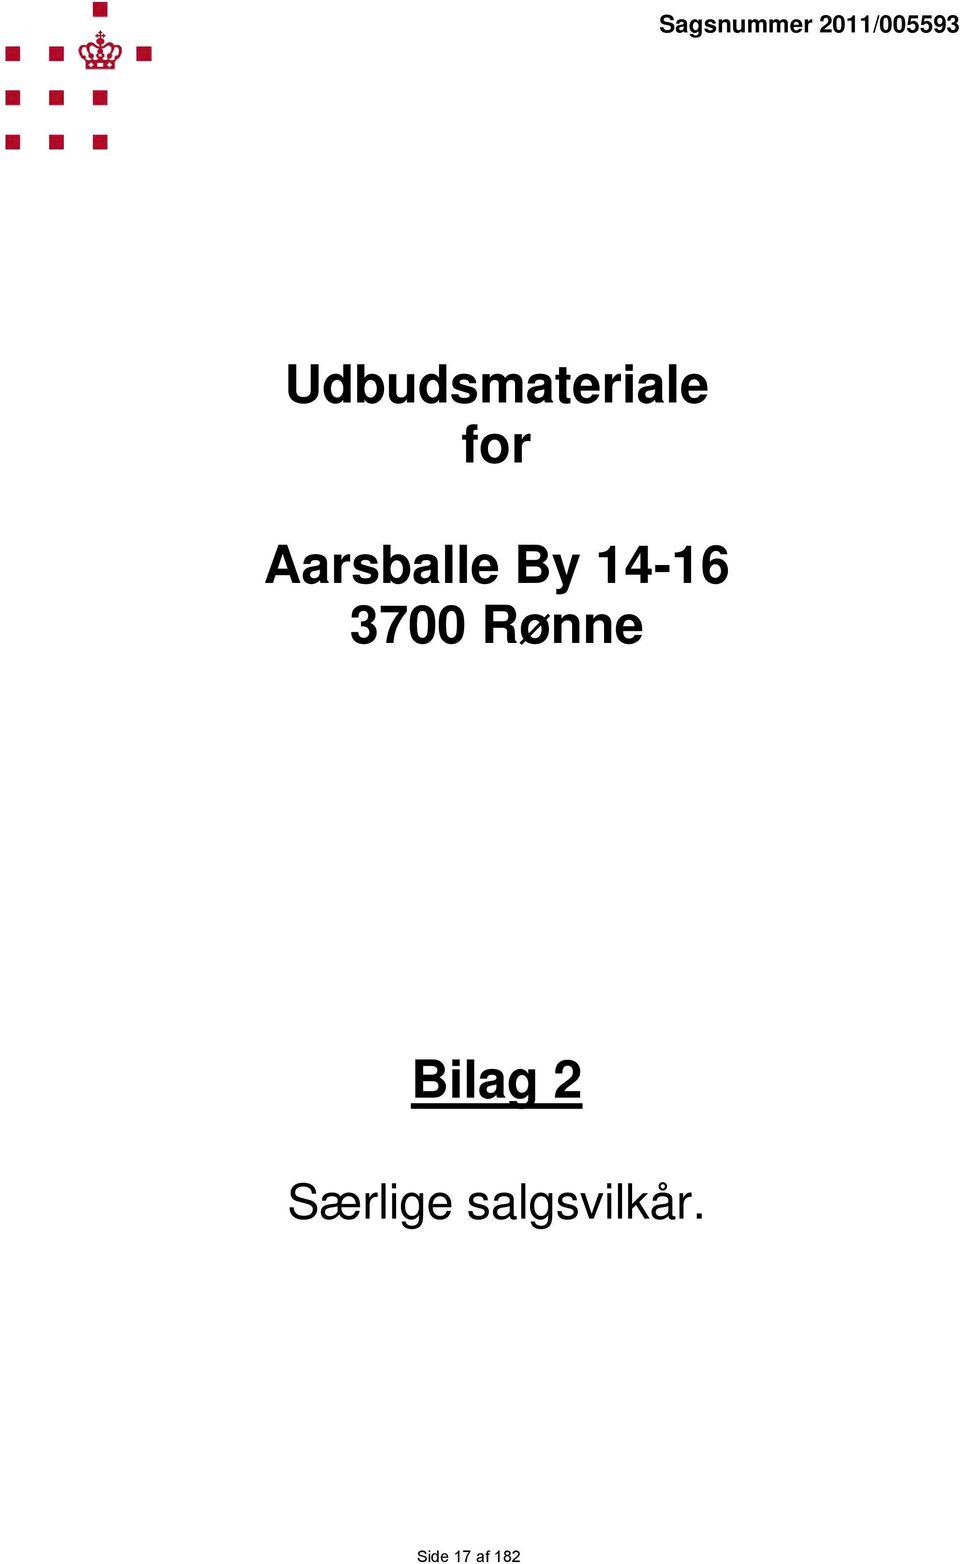 Aarsballe By 14-16 3700